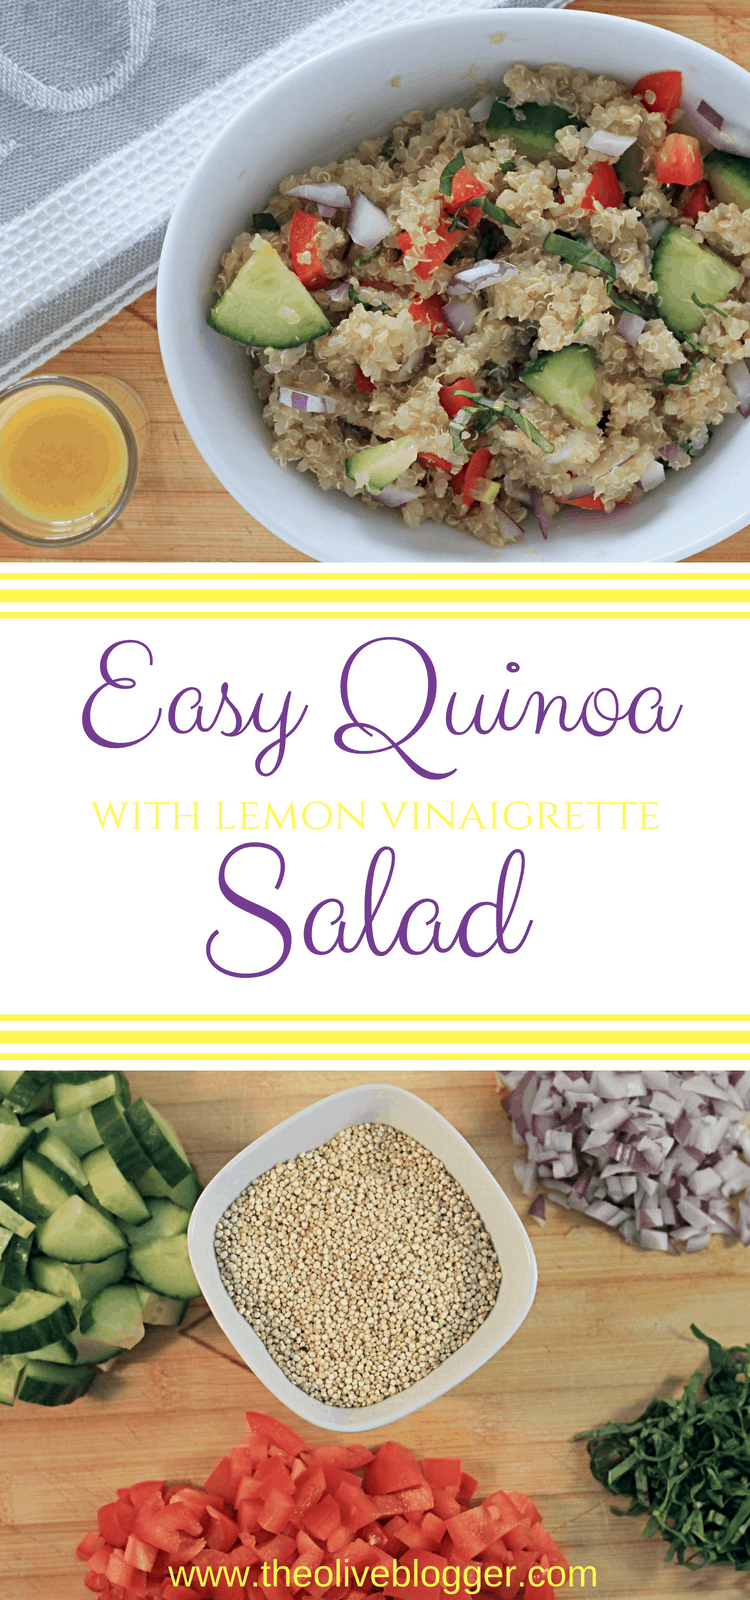 Quinoa Salad with Lemon Vinaigrette- Perfect side dish for picnics and BBQ's! #Salad #Quinoa #PicnicFood